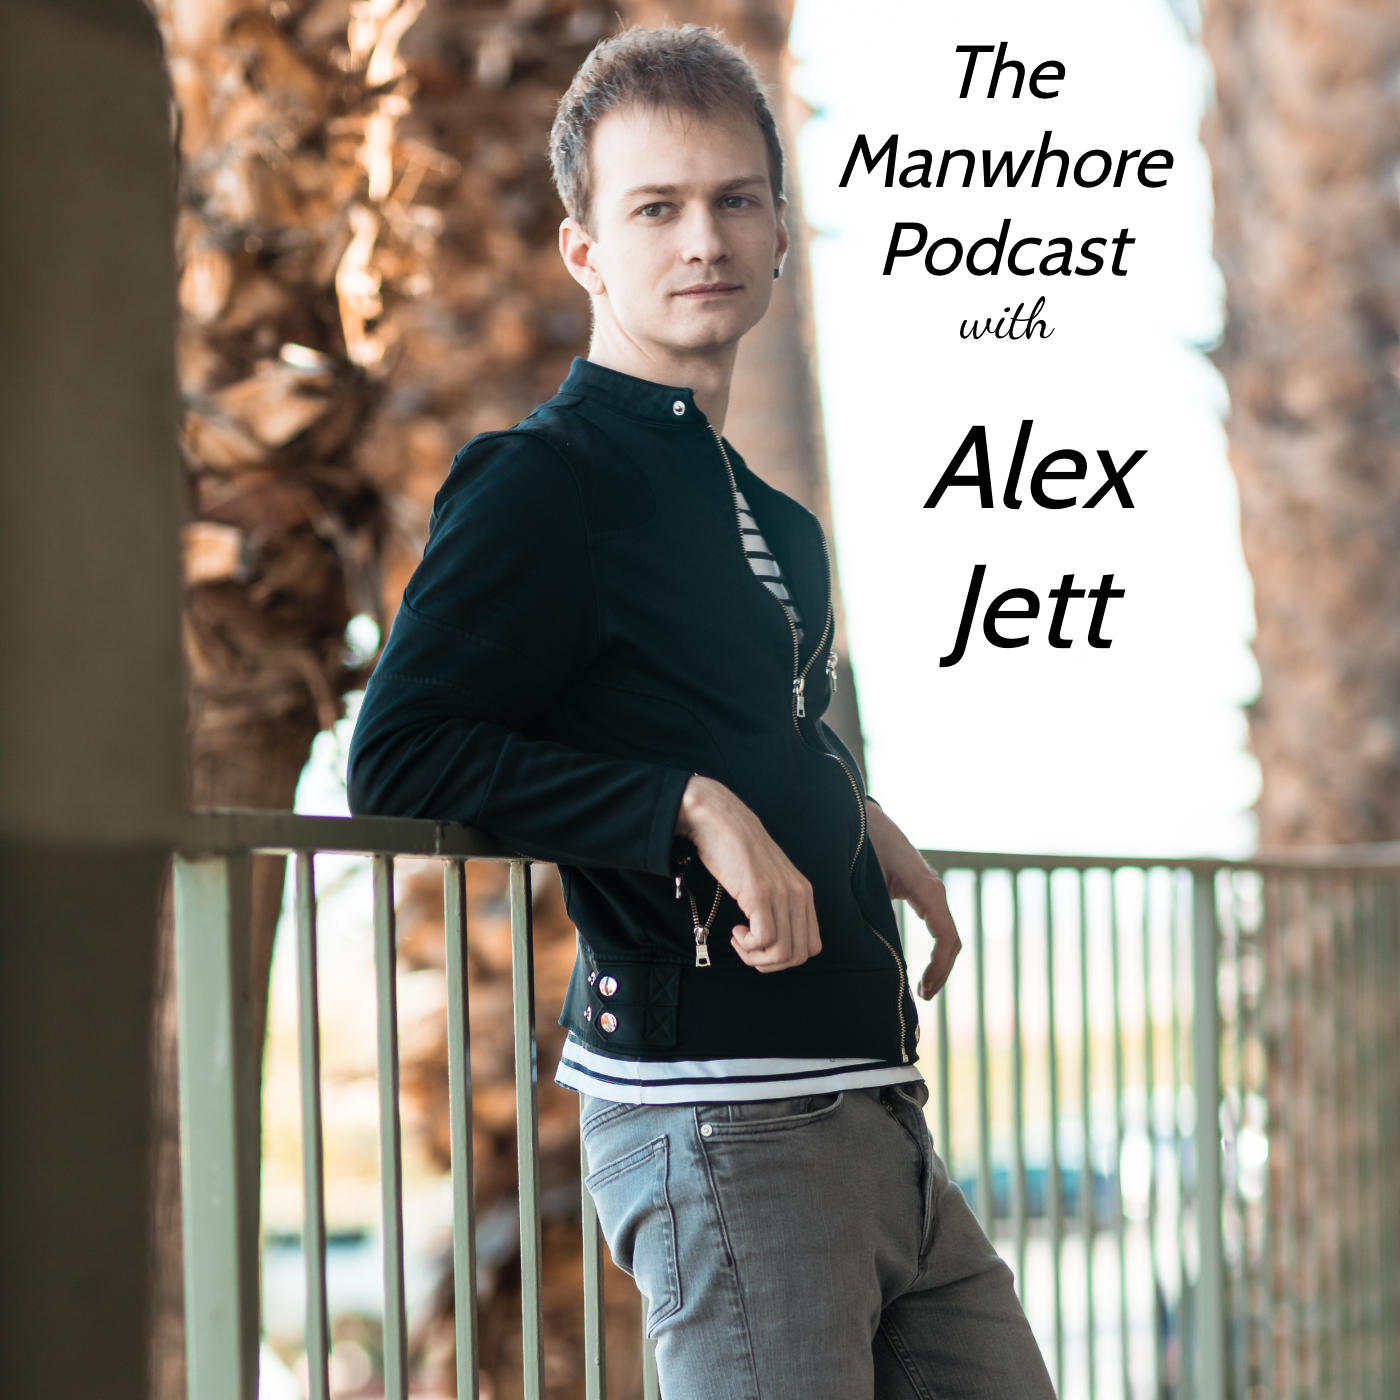 The Manwhore Podcast: A Sex-Positive Quest - Ep. 316: From Homeless Attention Whore to AVN Newcomer with Alex Jett // Revenge Porn with Katelyn Bowden